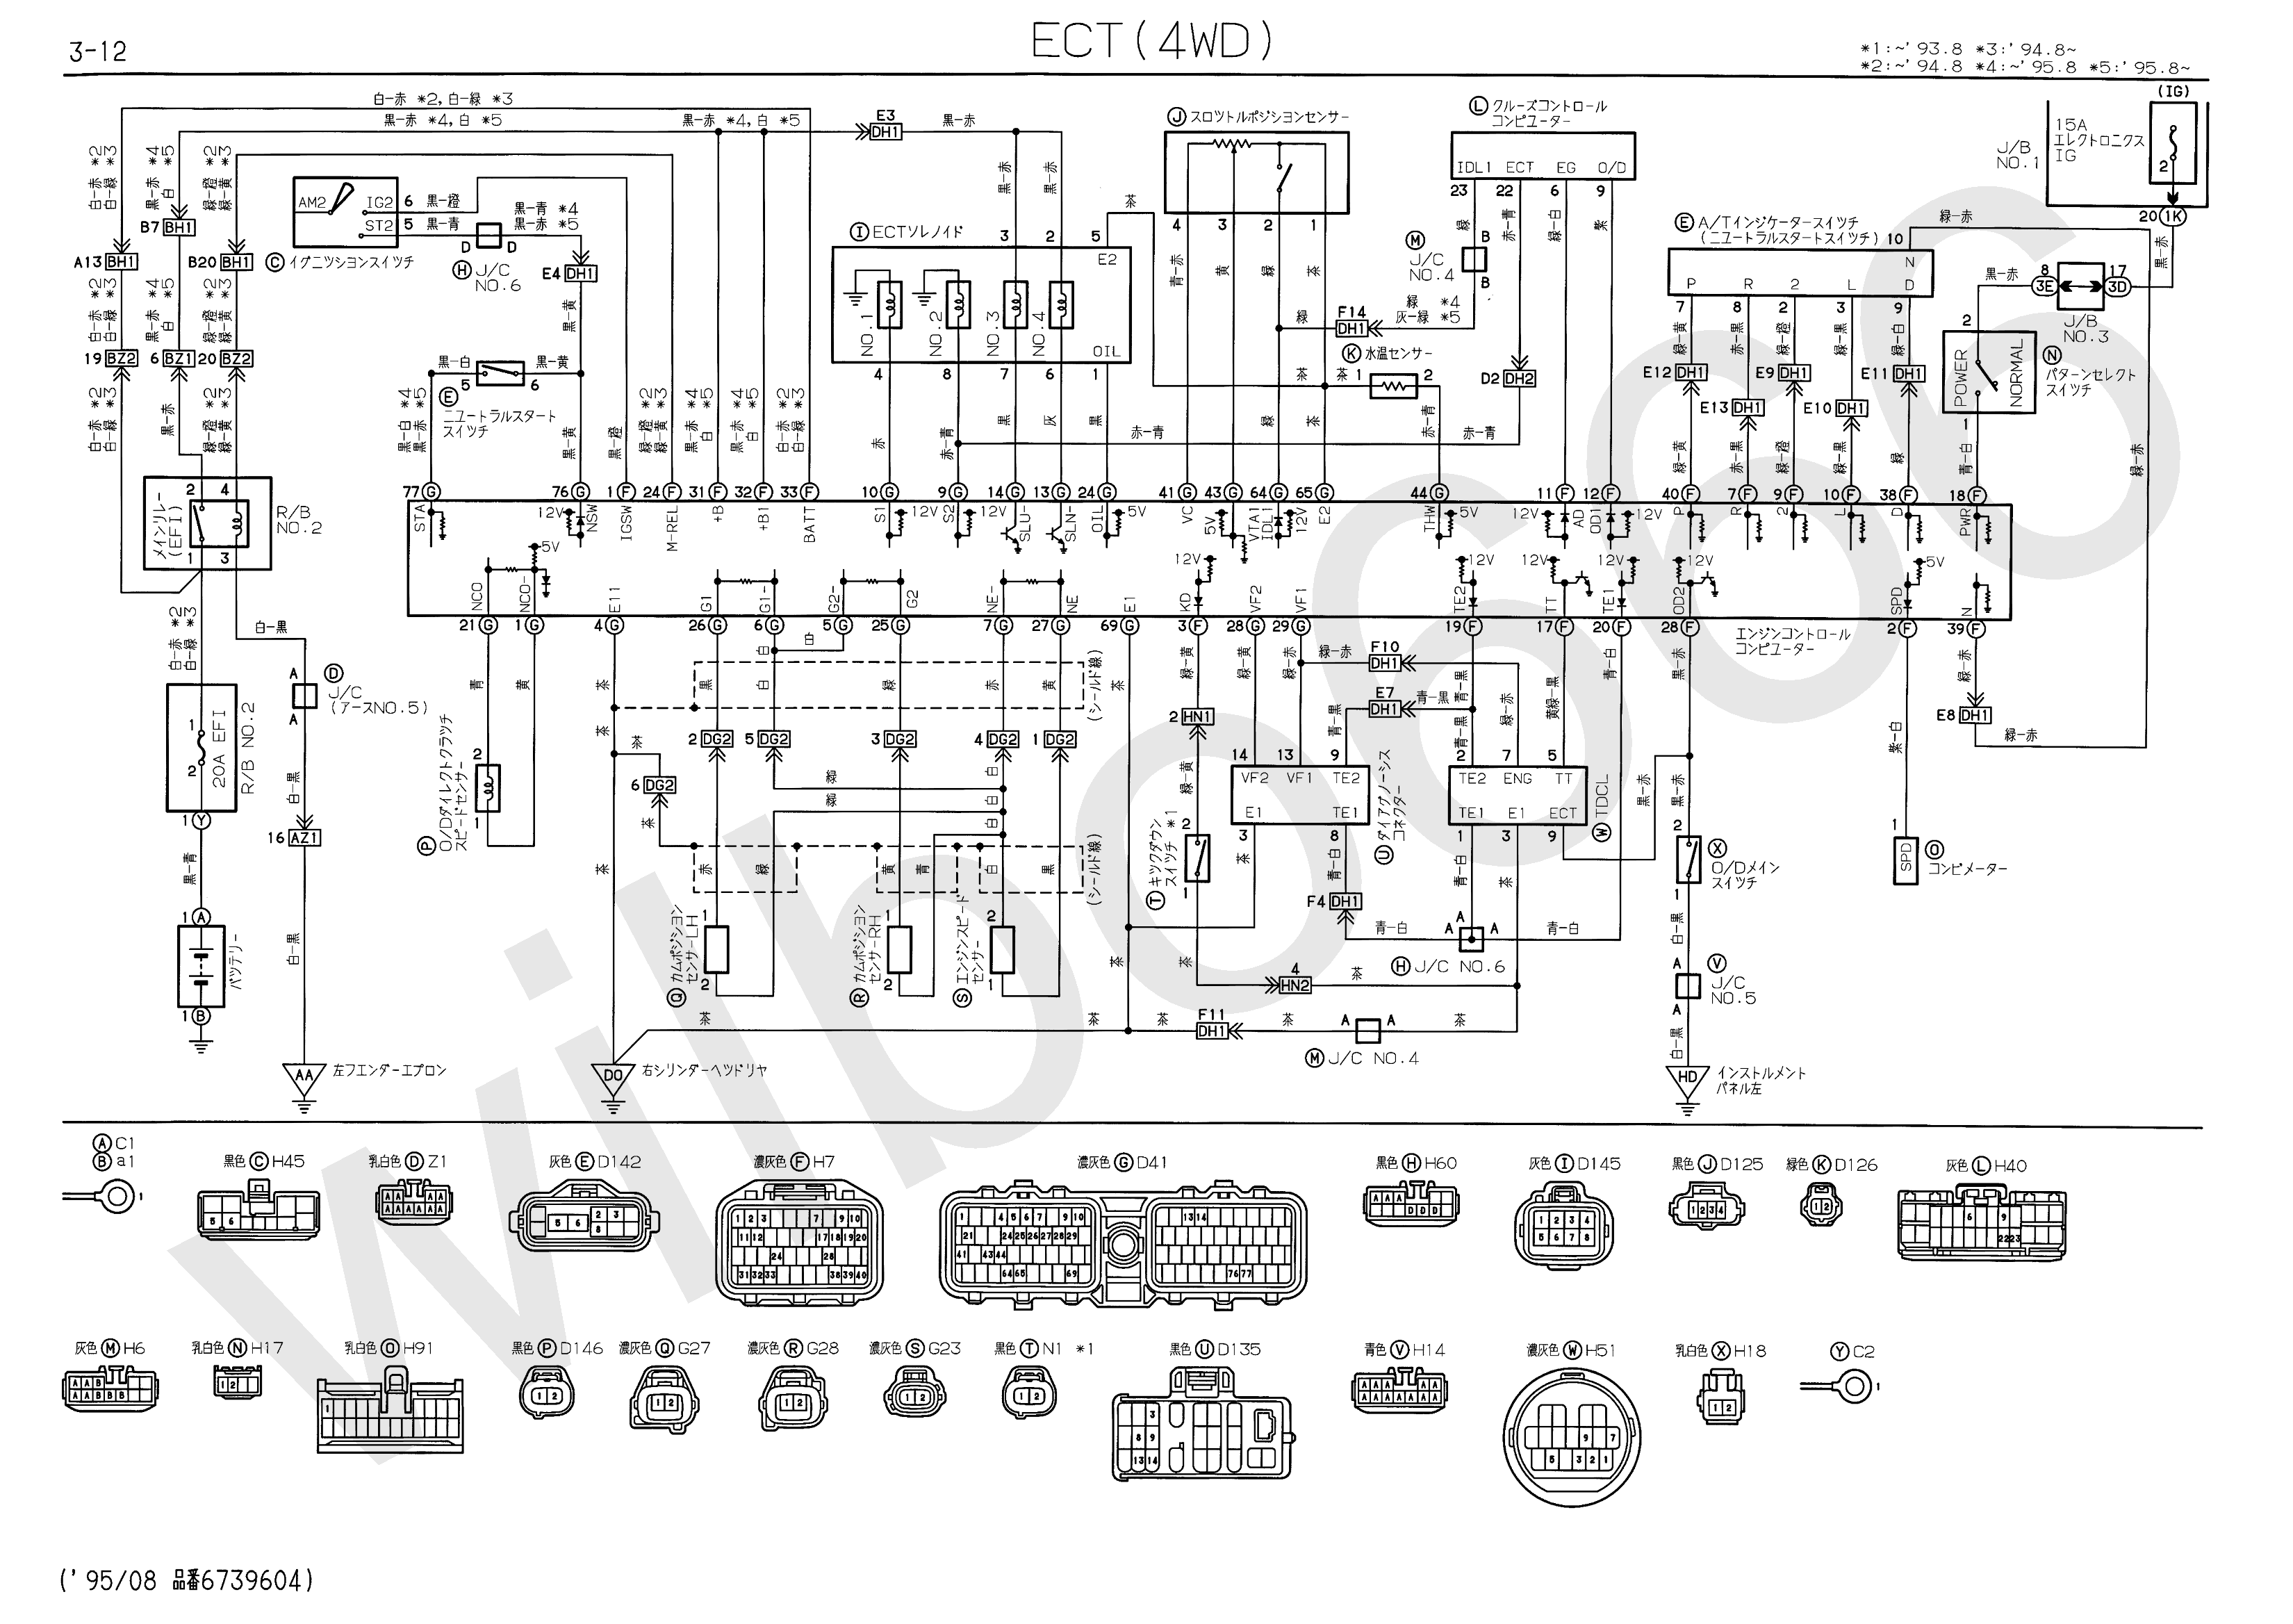 JZS14%23%2C UZS14%23 Electrical Wiring Diagram 6739604 3 12?resize\\\\\\\\\\\\\\\\\\\\\\\\\\\\\\\\\\\\\\\\\\\\\\\\\\\\\\\\\\\\\\\\\\\\\\\\\\\\\\\\\\\\\\\\\\\\\\\\\\\\\\\\\\\\\\\\\\\\\\\\\\\\\\\\\\\\\\\\\\\\\\\\\\\\\\\\\\\\\\\\\\\\\\\\\\\\\\\\\\\\\\\\\\\\\\\\\\\\\\\\\\\\\\\\\\\\\\\\\\\\\\\\\\\\\\\\\\\\\\\\\\\\\\\\\\\\\\\\\\\\\\\\\\\\\\\\\\\\\\\\\\\\\\\\\\\\\\\\\\\\\\\\\\\\\\\\\\\\\\\\\\\\\\\\\\\\\\\\\\\\\\\\\\\\\\\\\\\\\\\\\\\\\\\\\\\\\\\\\\\\\\\\\\\\\\\\\\\\\\\\\\\\\\\\\\\\\\\\\\\\\\\\\\\\\\\\\\\\\\\\\\\\\\\=665%2C471 cat 422s wiring diagram cat forklift parts manual pdf \u2022 wiring  at gsmx.co